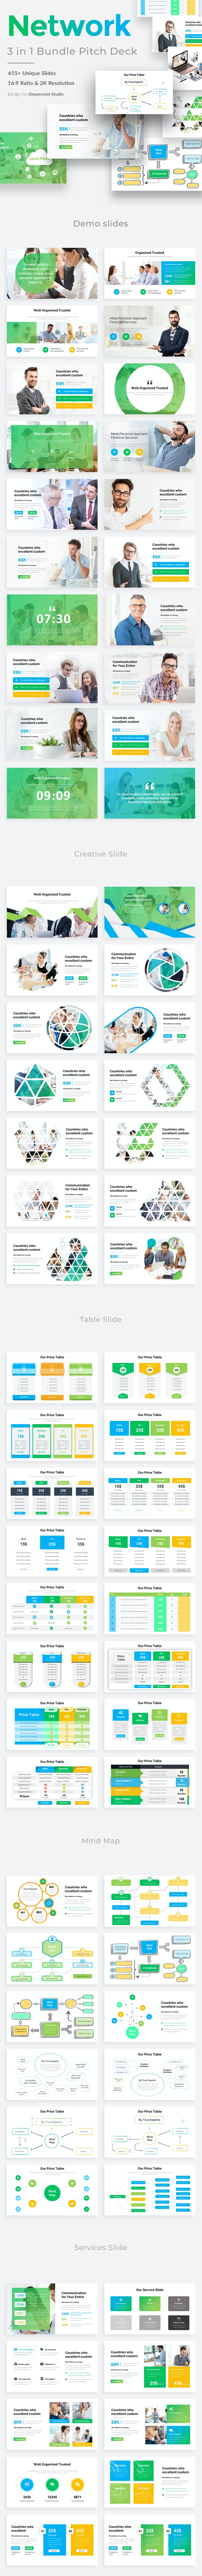 Business Network Bundle 3 in 1 Pitch Deck Powerpoint Template - Creative PowerPoint Templates